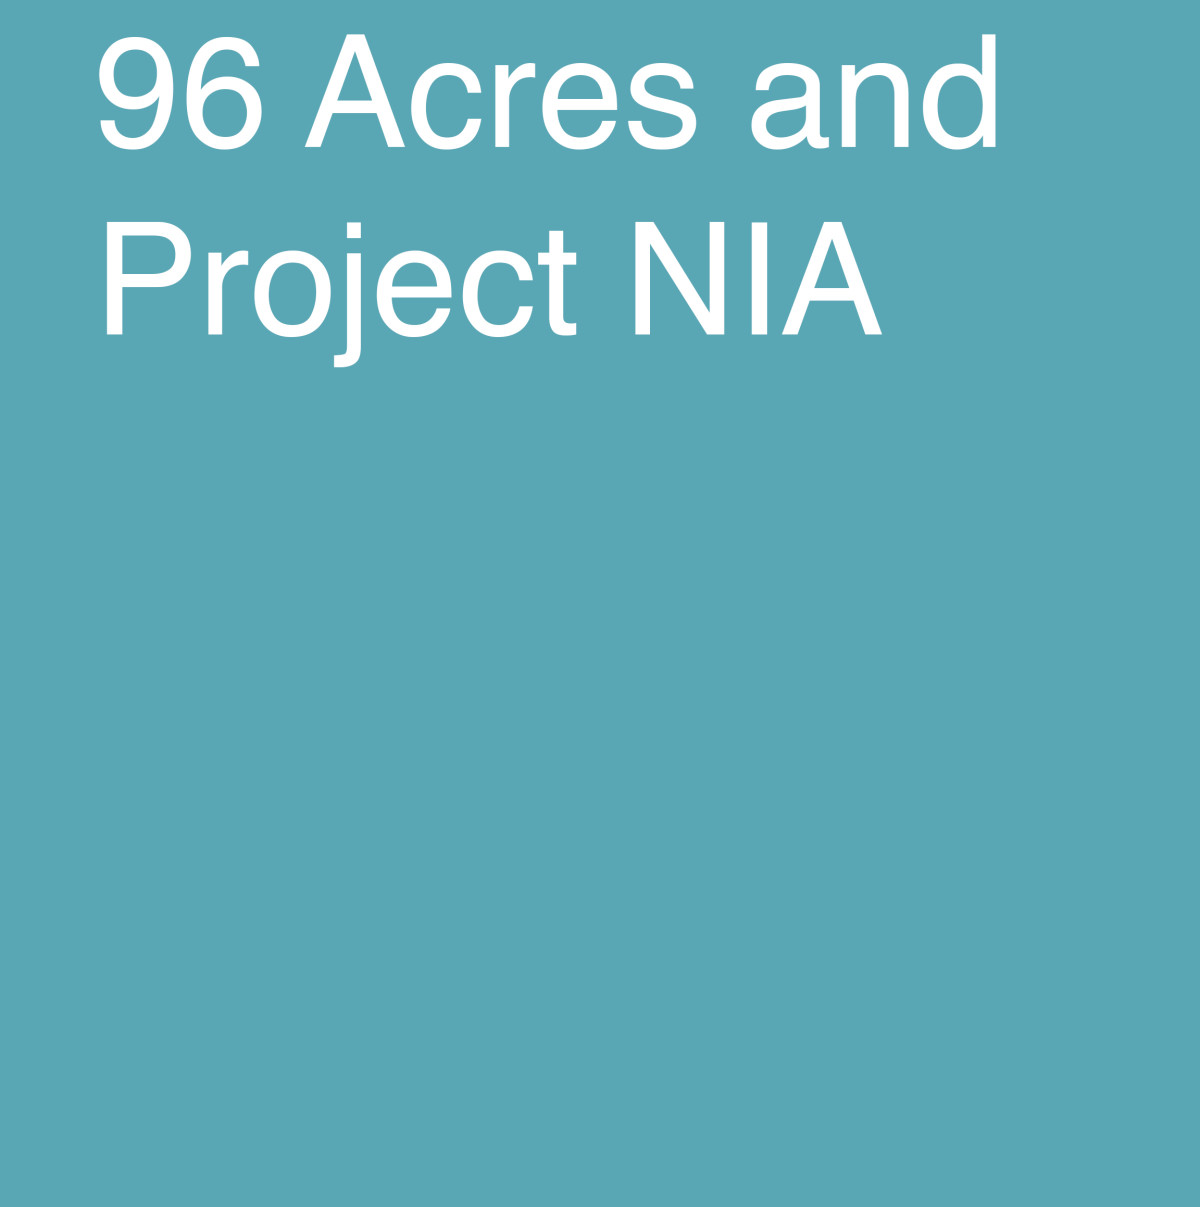 96 Acres and Project NIA